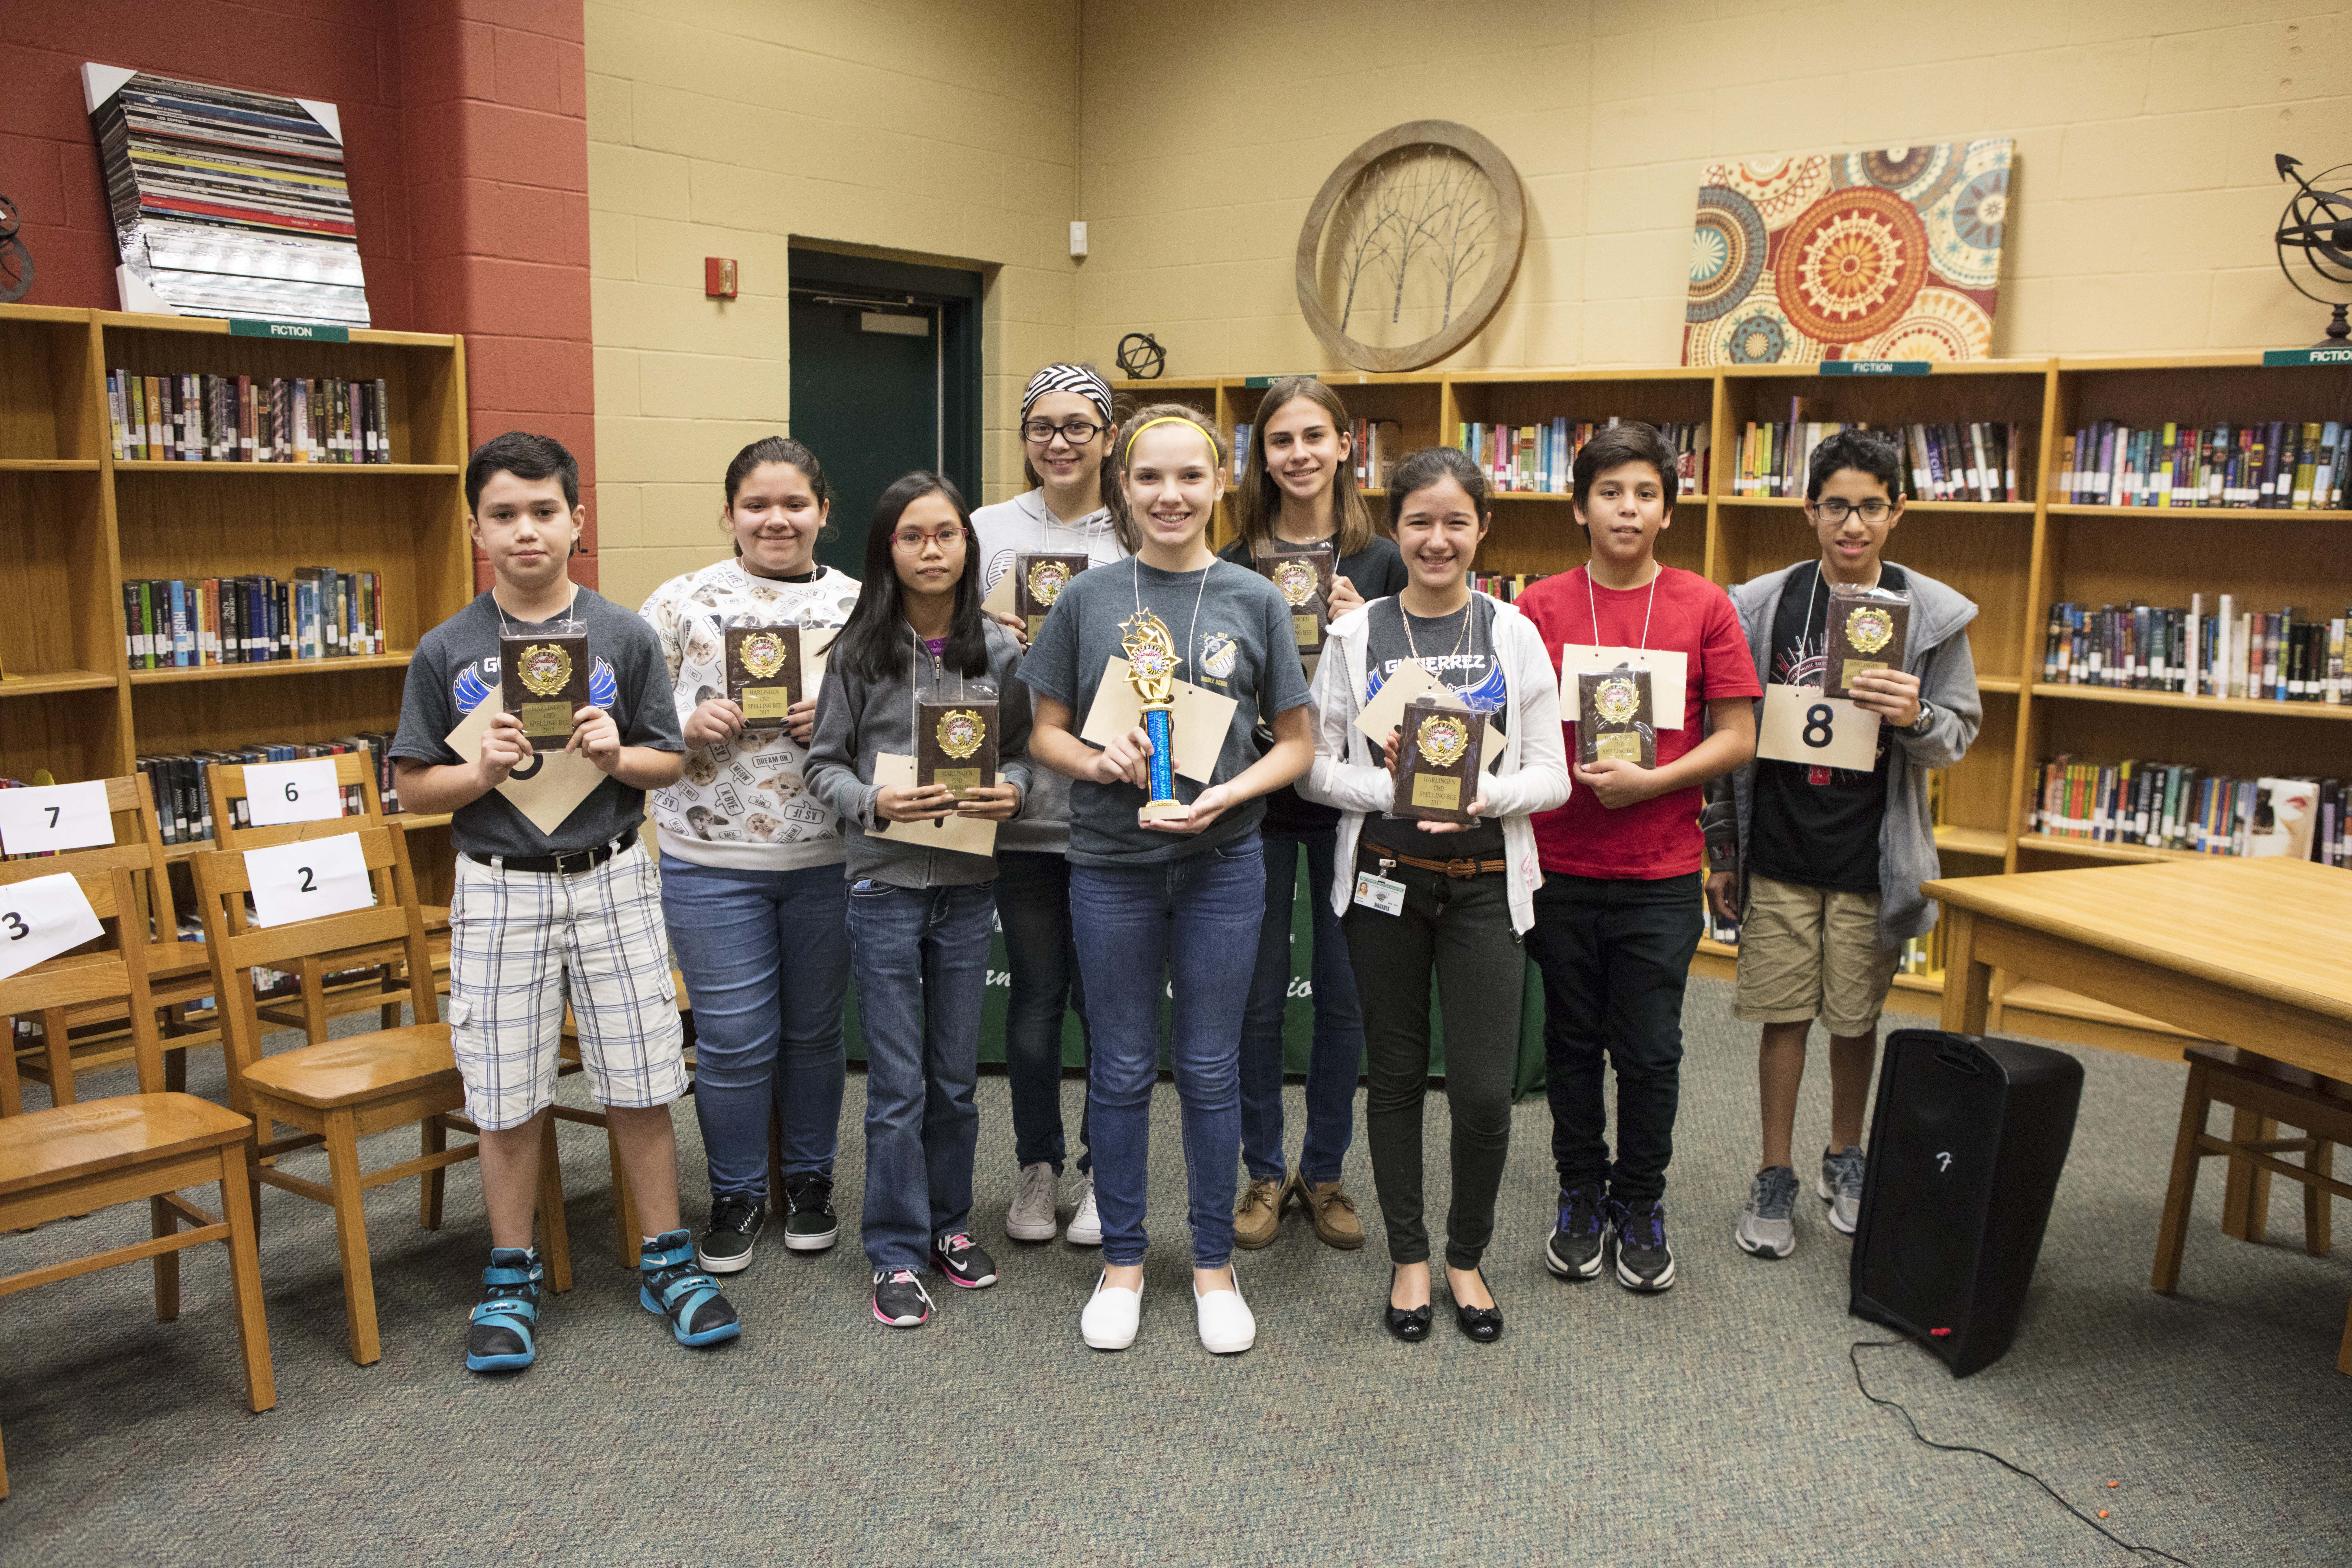 Students put their skills to the test at district spelling bee